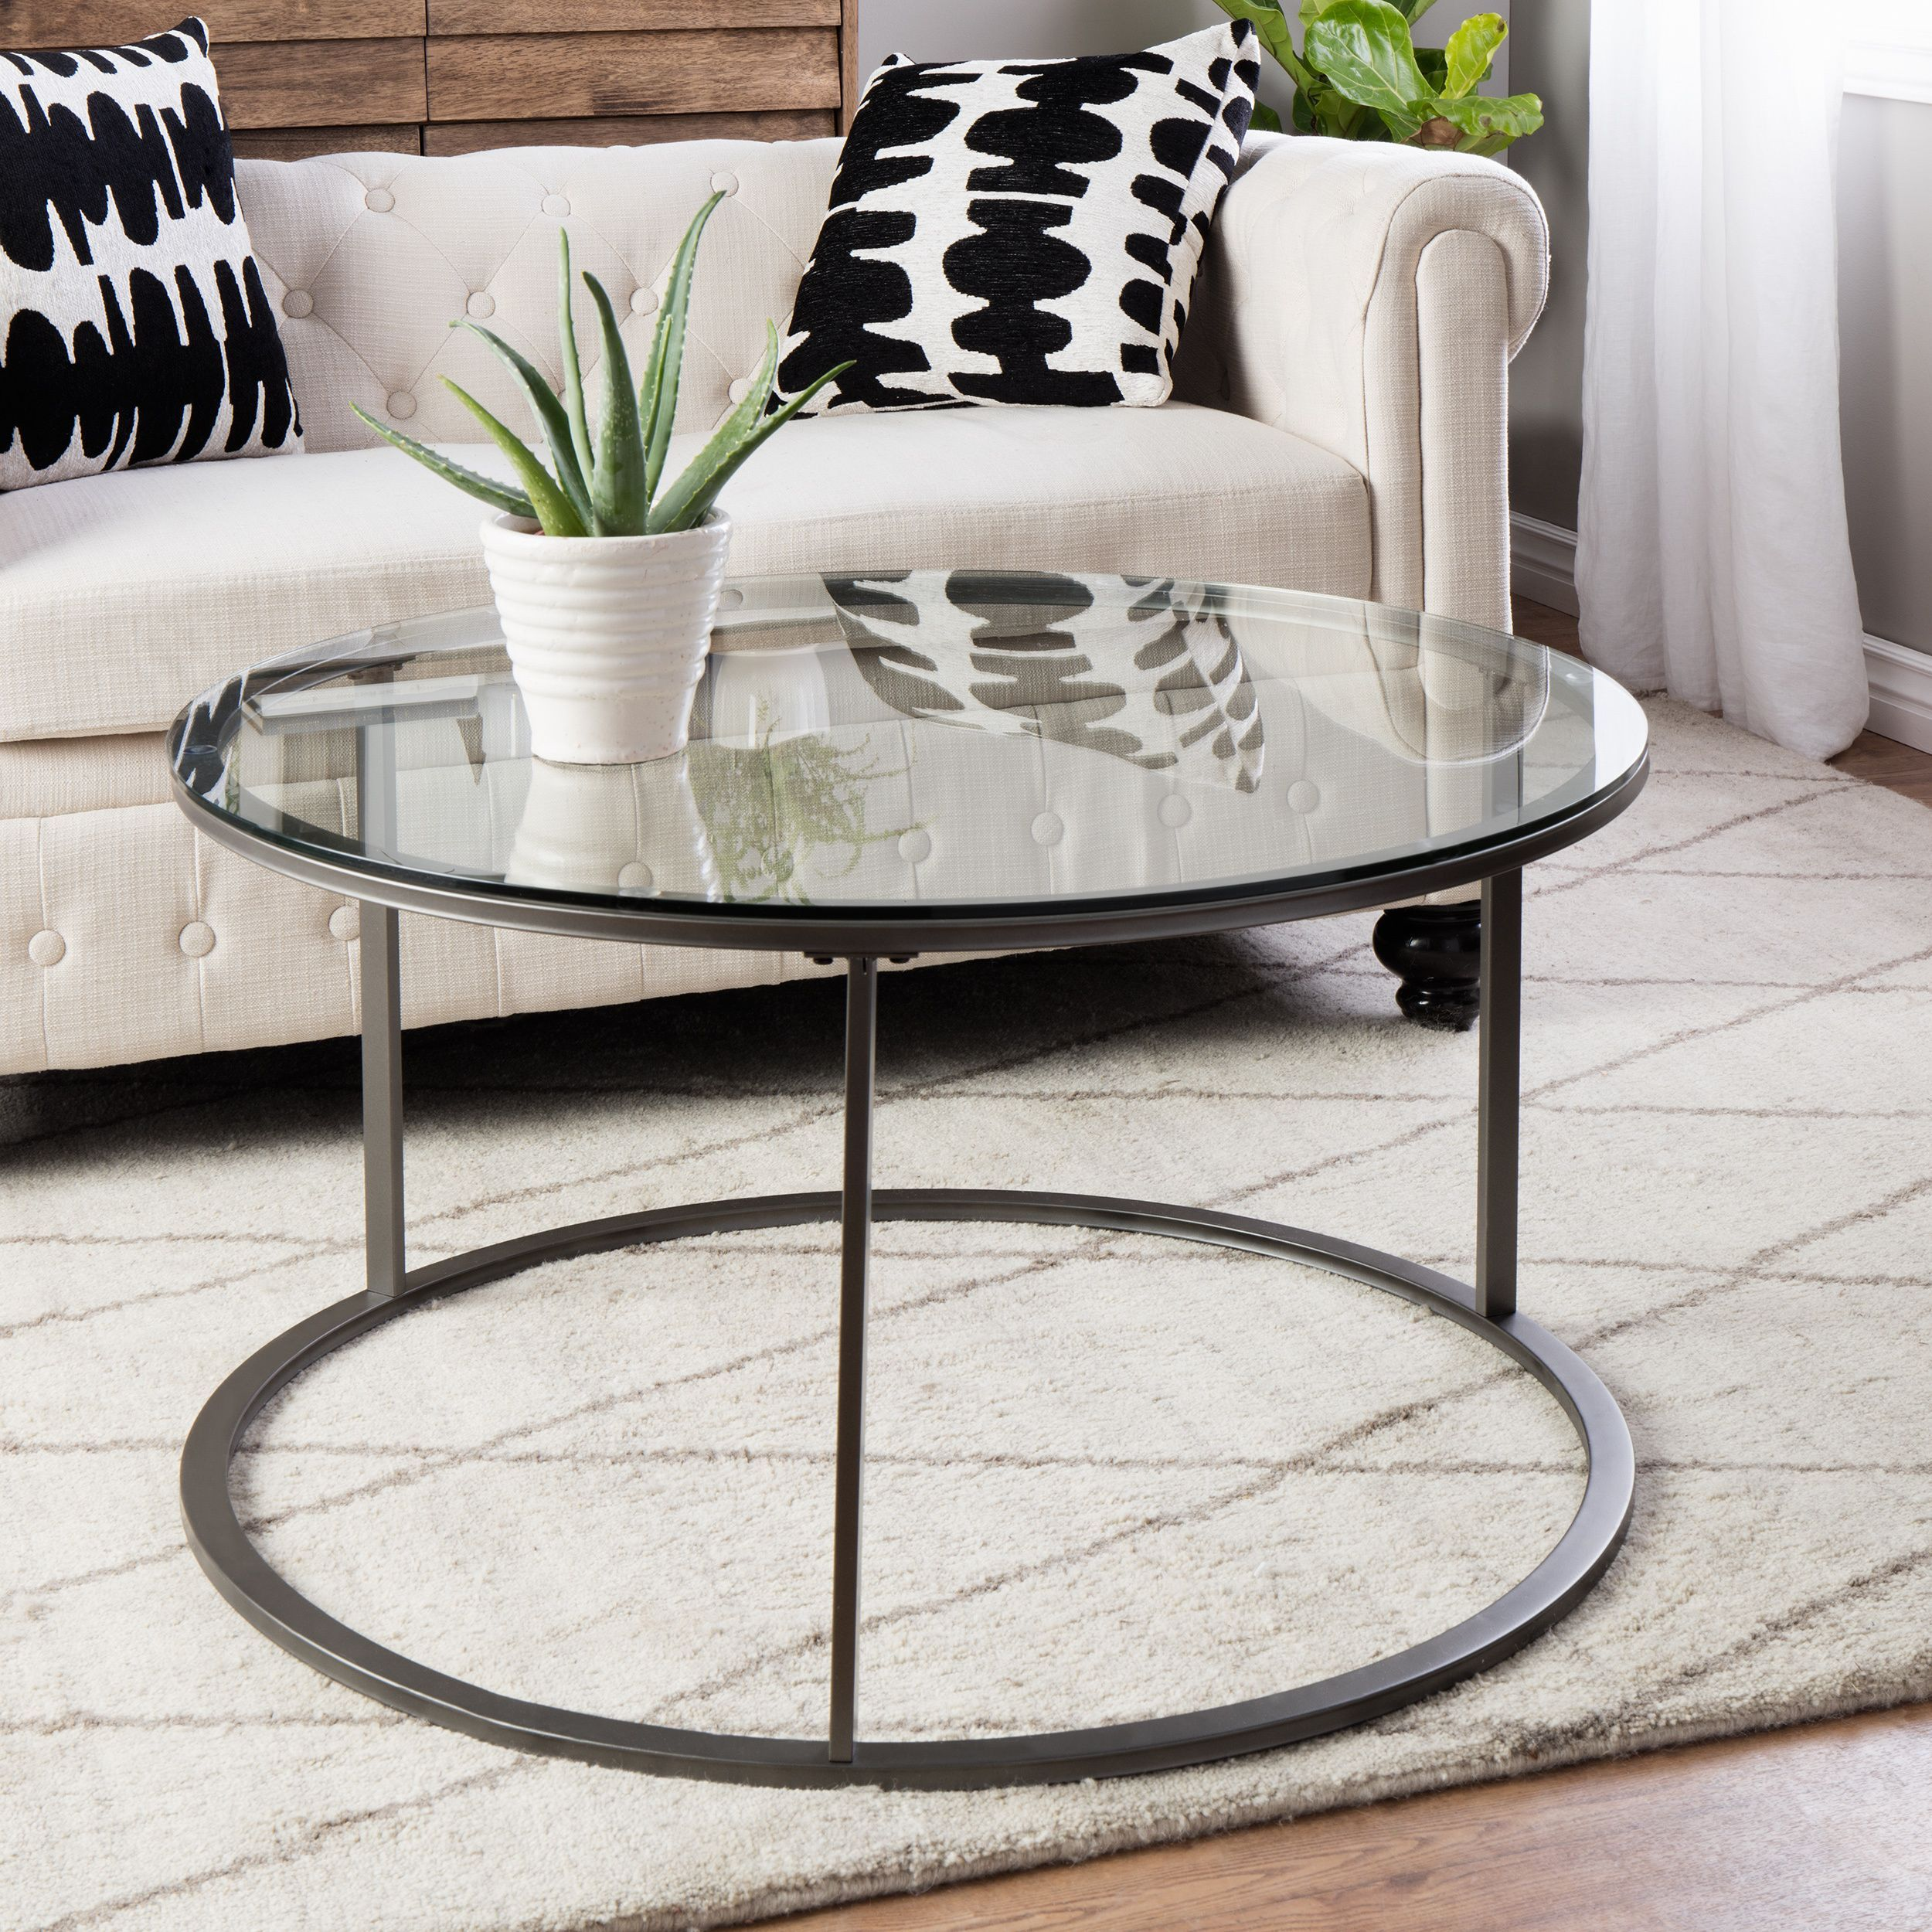 This Round Gl Top Coffee Table Looks Great In Any Living Room Or Recreation Setting Its Tempered And Sy Metal Frame Hold Up To